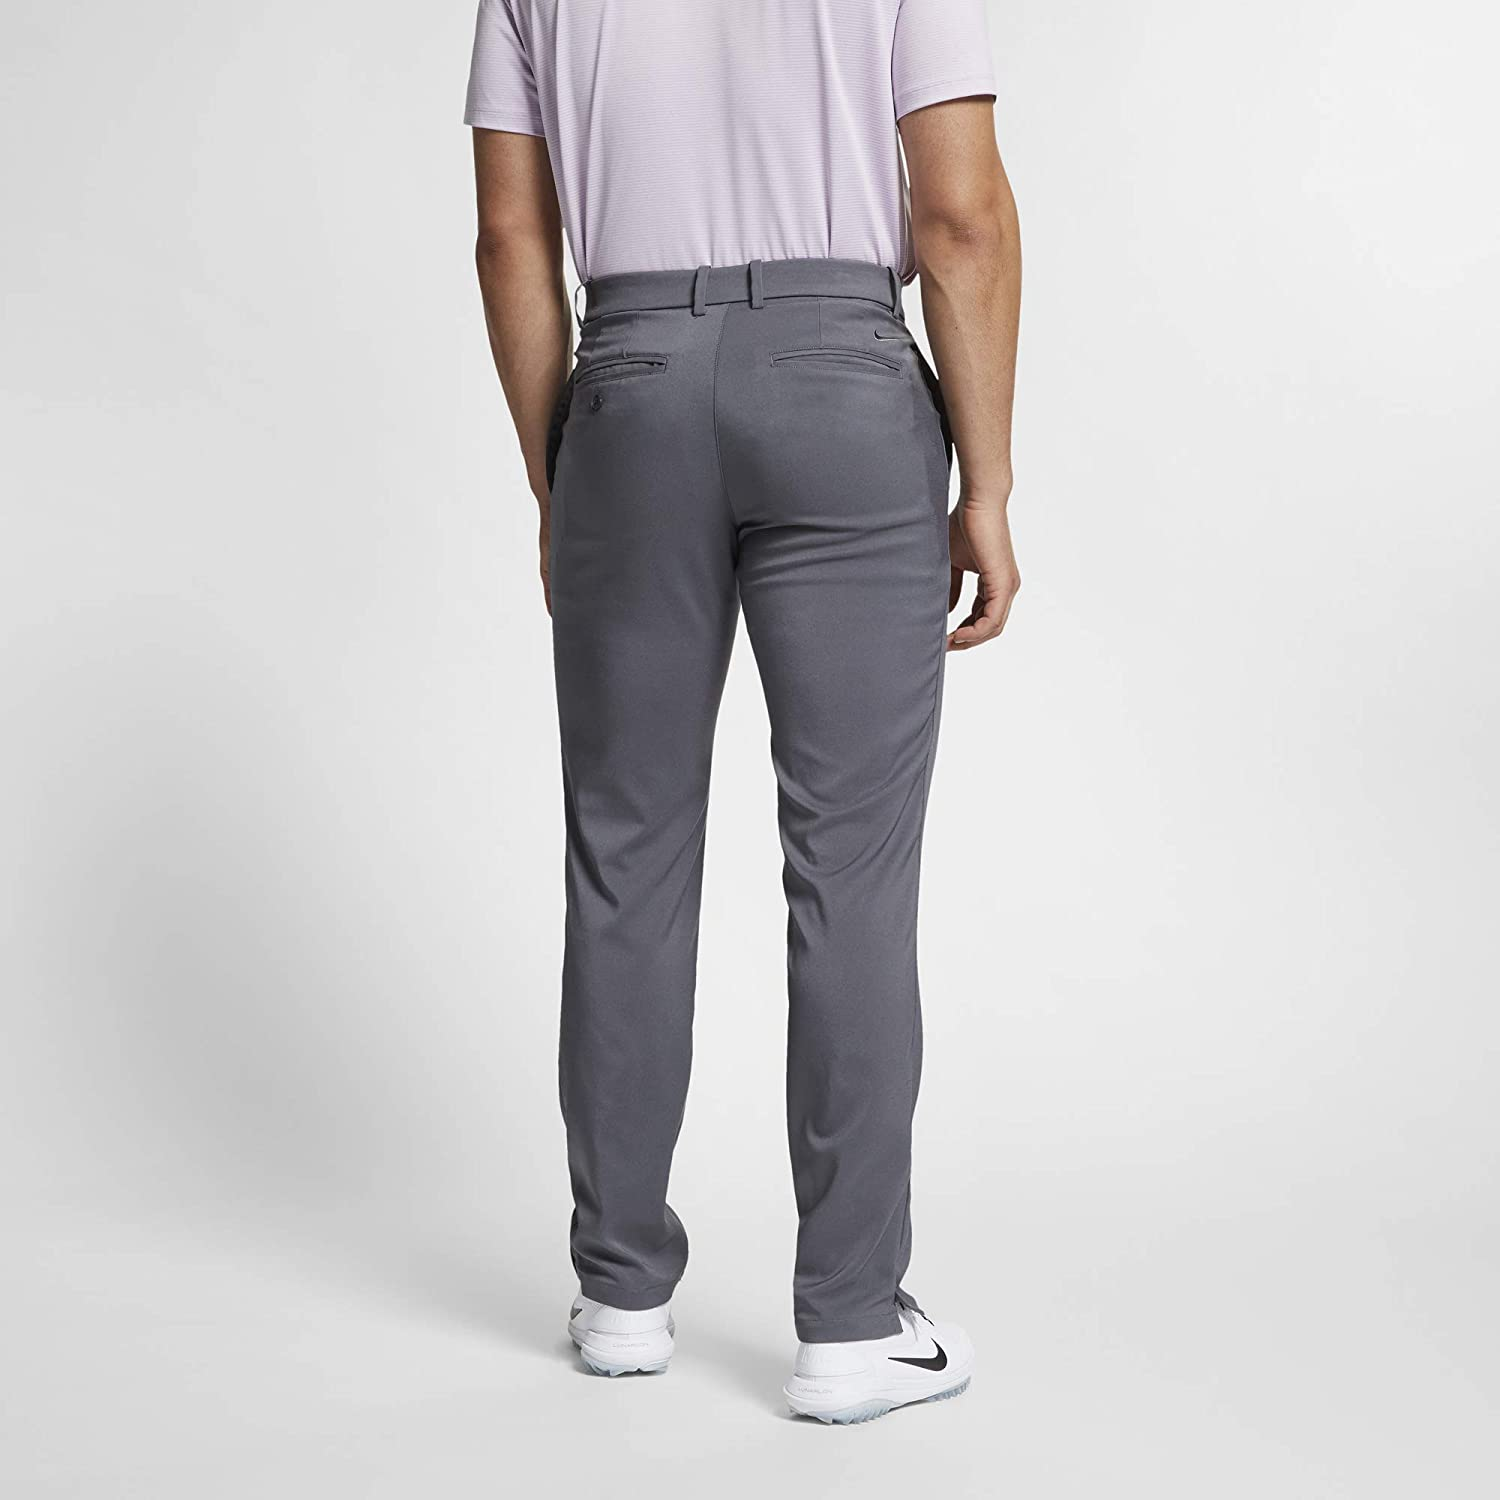 6380d62a0 Amazon.com: NIKE Men's Flex Core Pants: Clothing